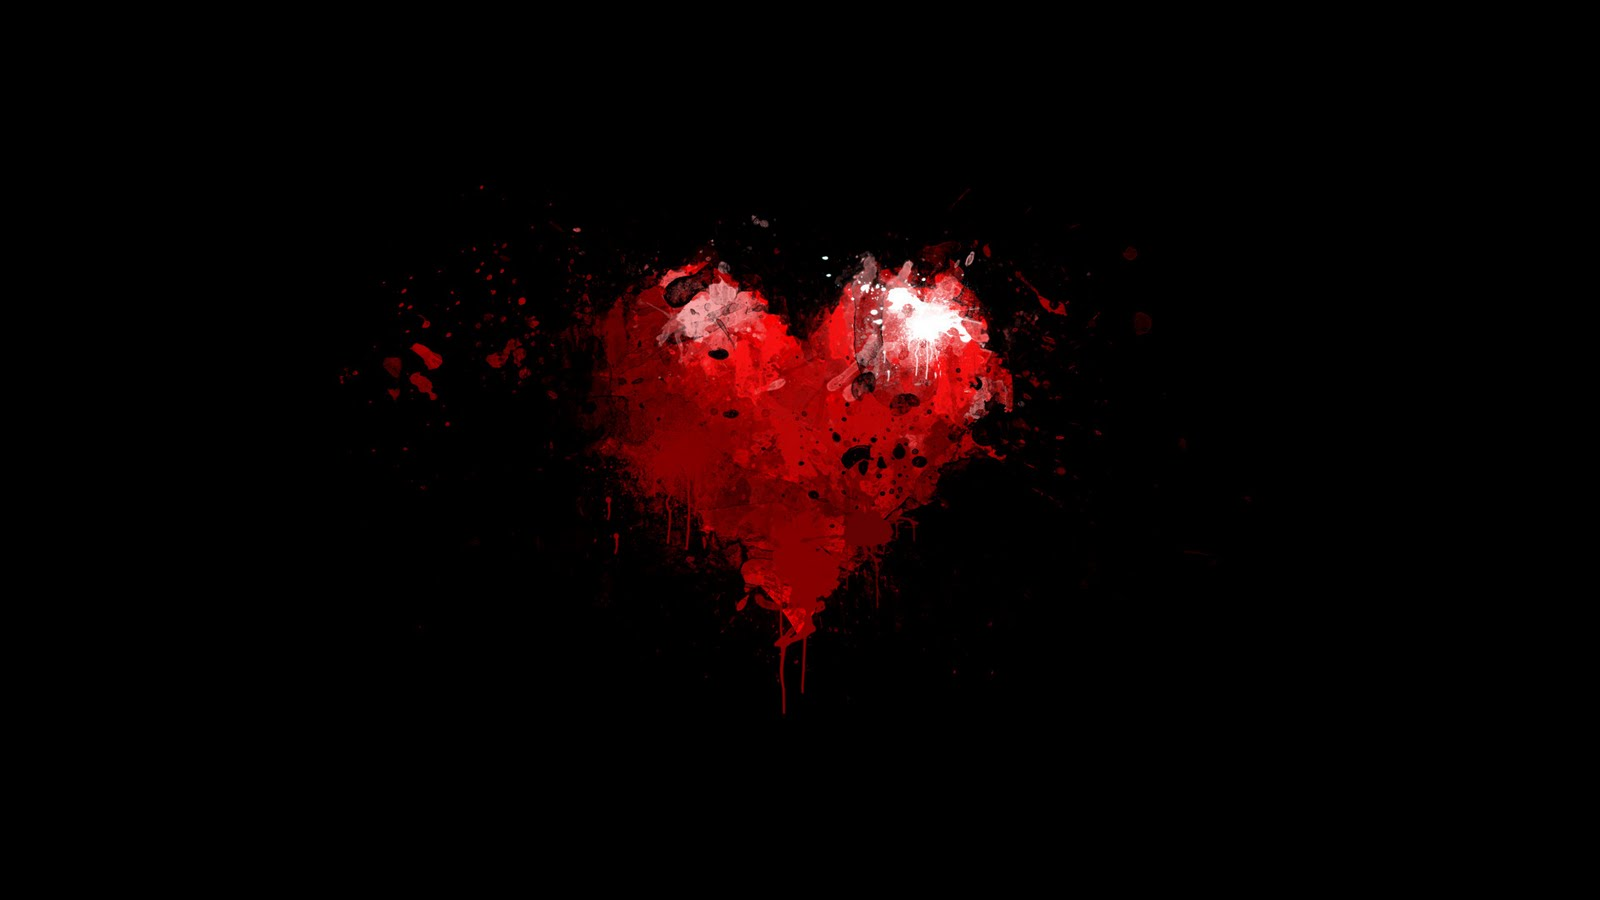 Love Heart Wallpaper Background 3d : 13 Awesome Black and Red Wallpapers HD - The Nology